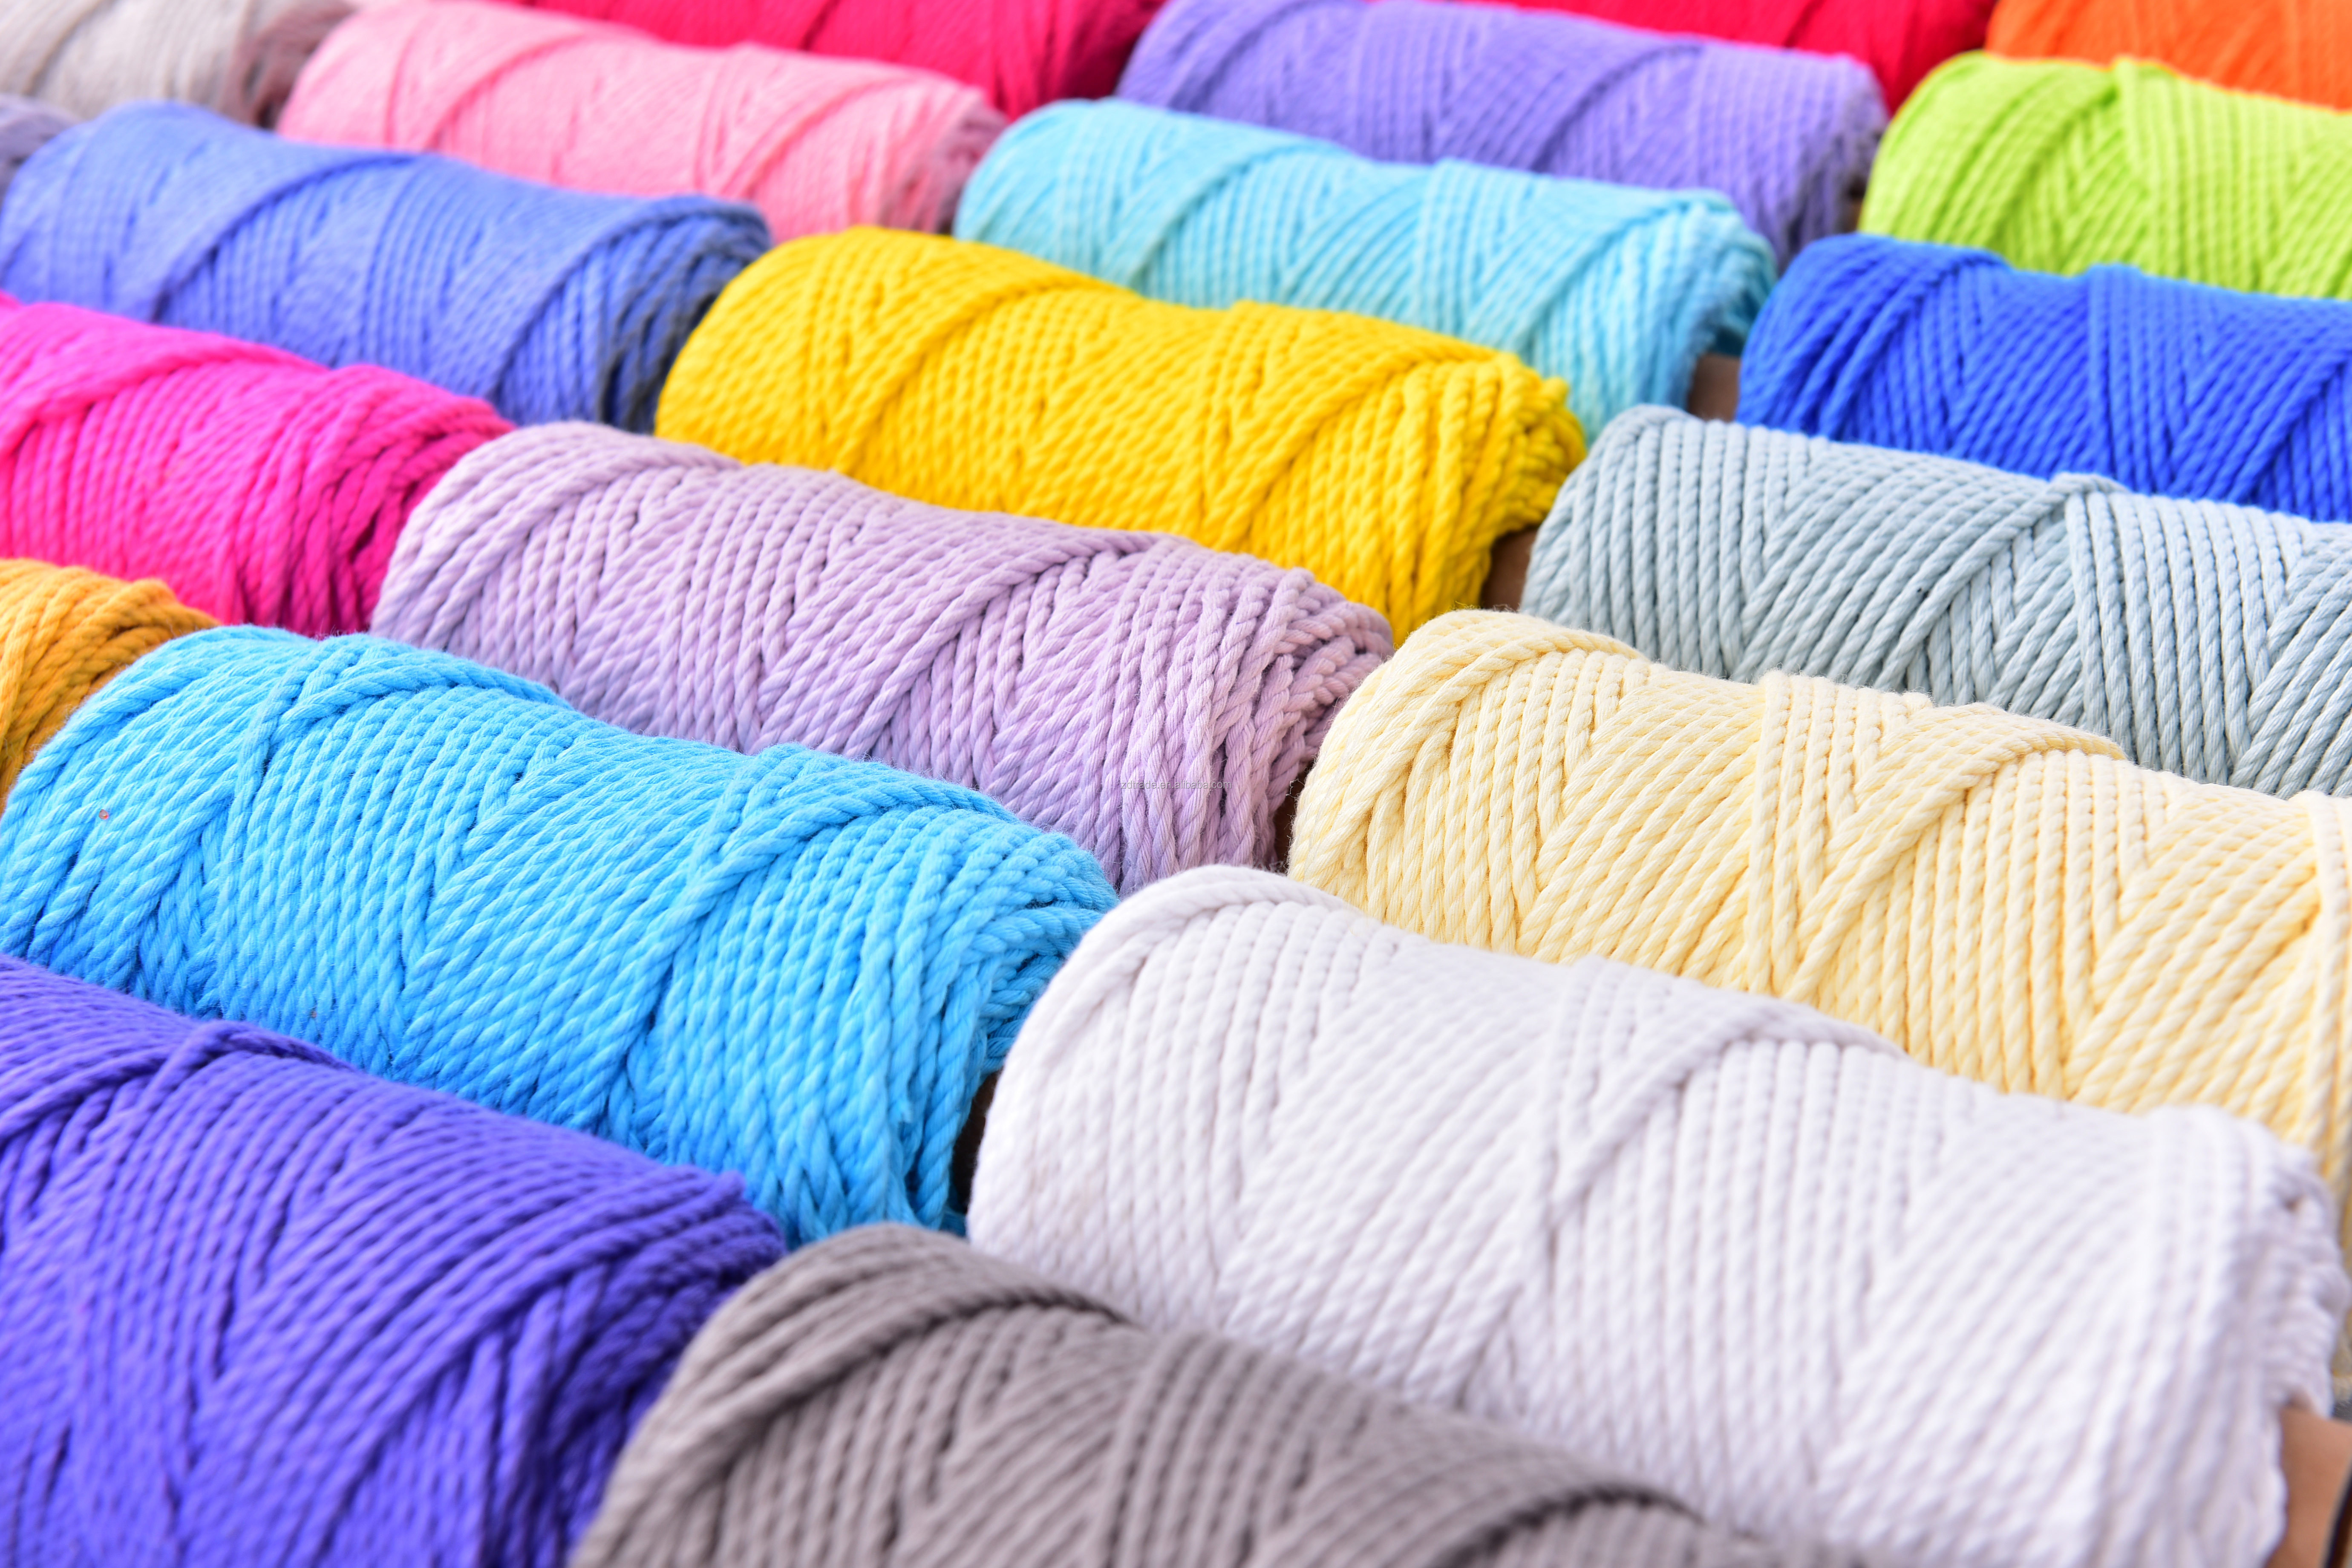 3.0MM/4.0MM Pure Cotton MACRAME ROPE Super Soft Cotton Rope, Macrame Twist rope  300gram